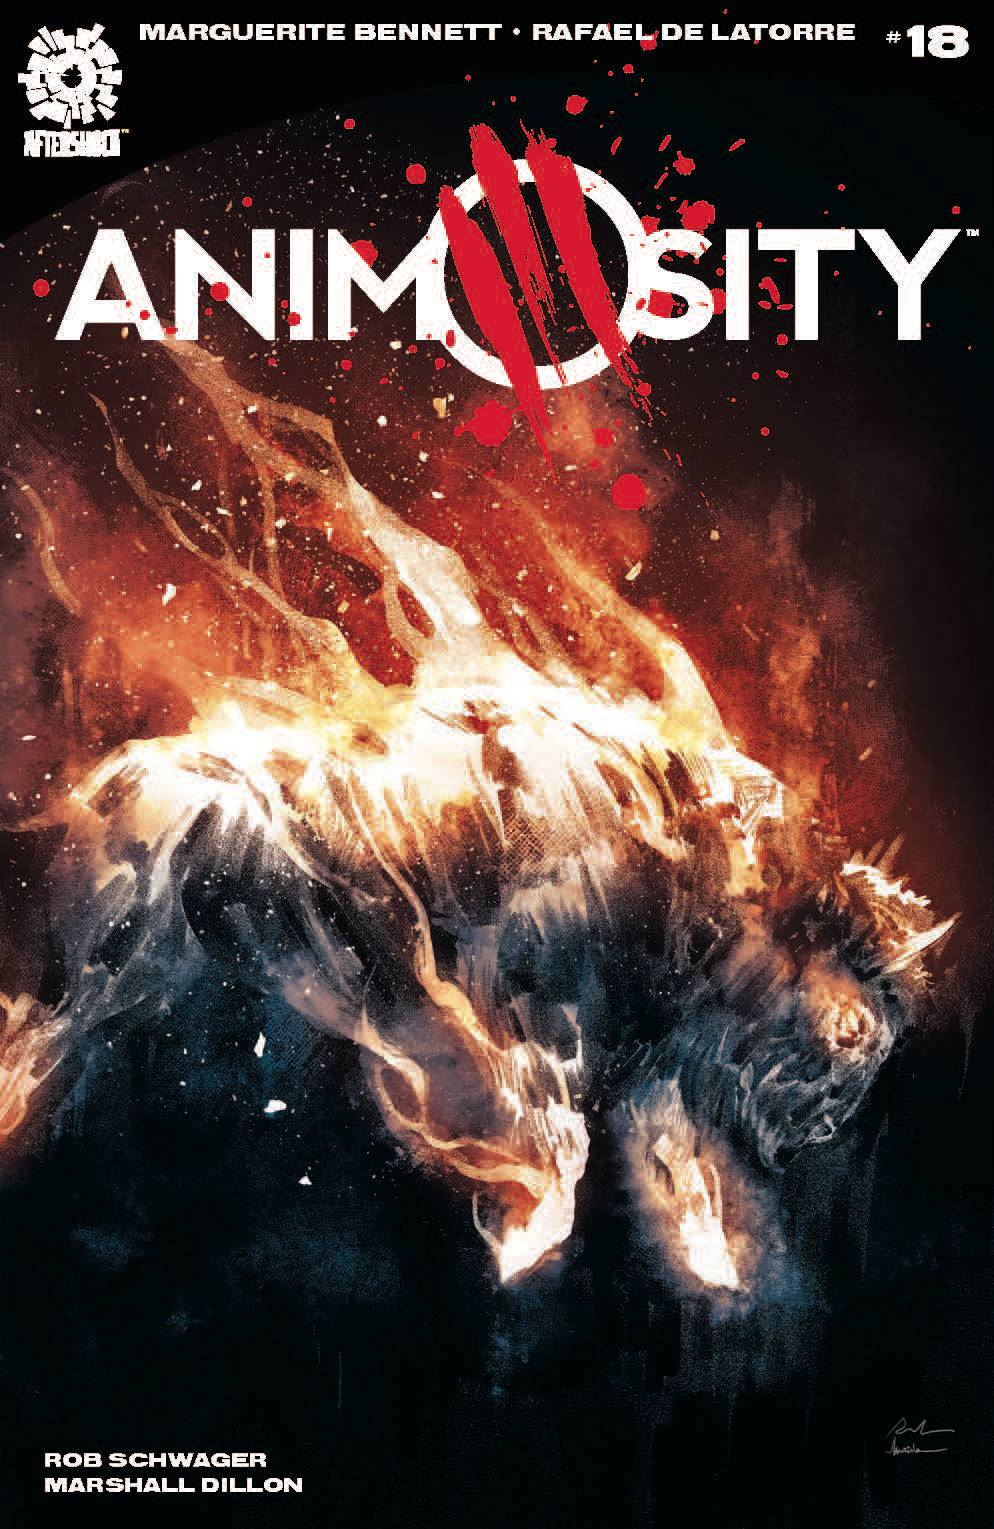 ANIMOSITY 18.jpg